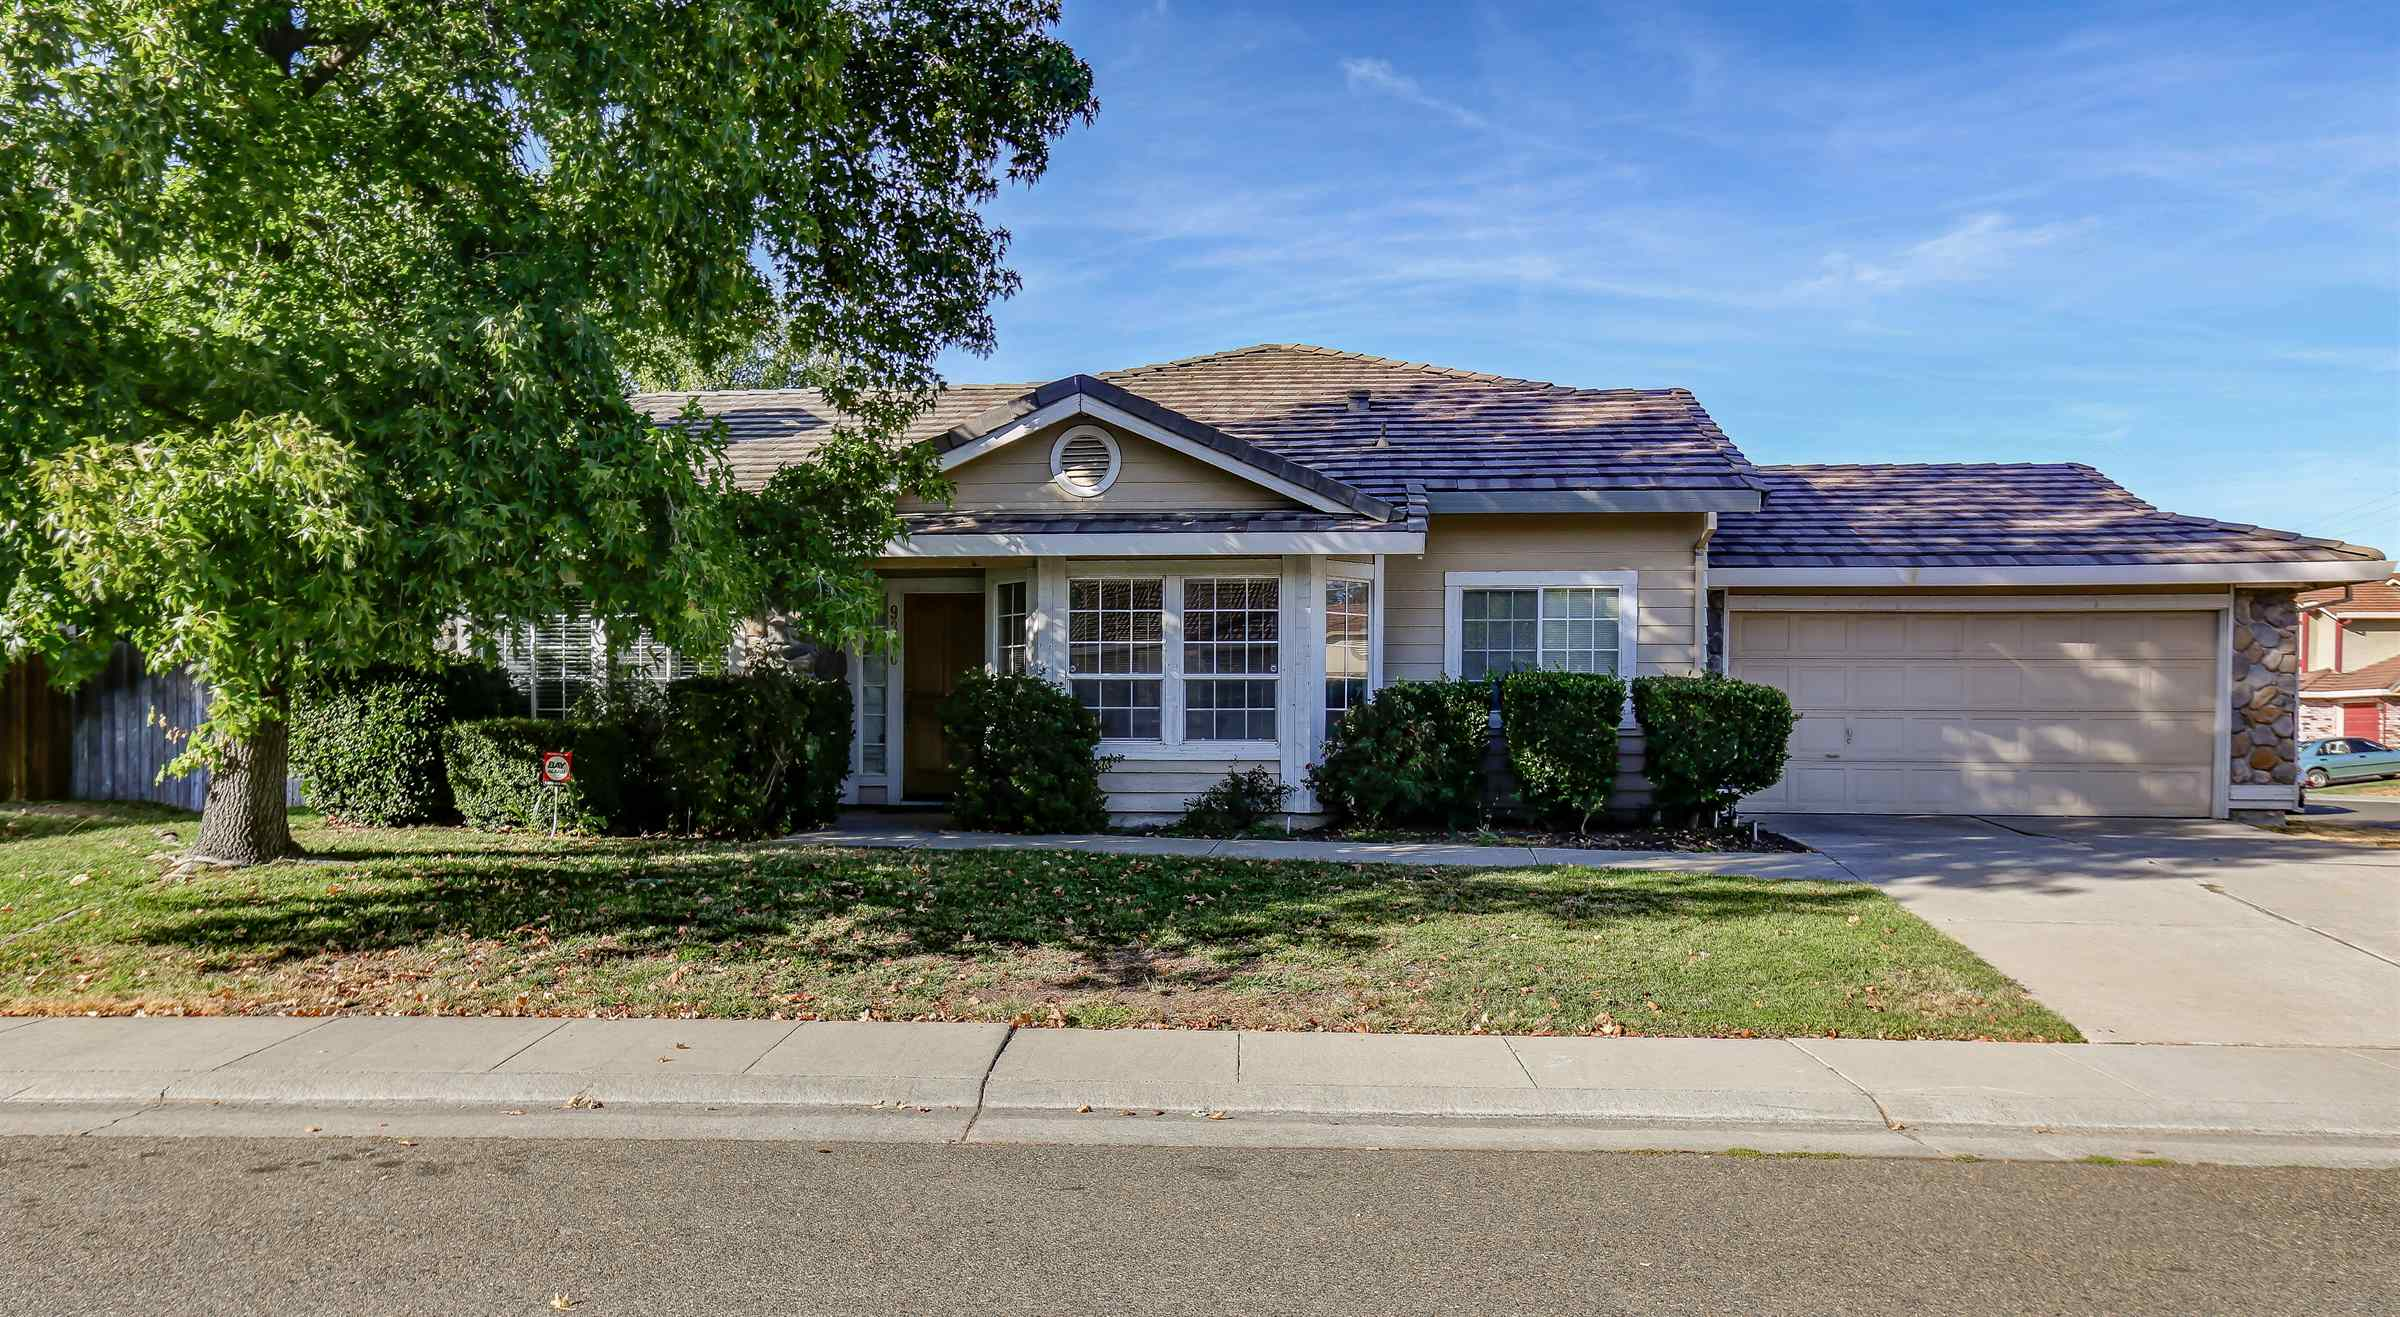 9330 Framington Way, Elk Grove, CA 95758